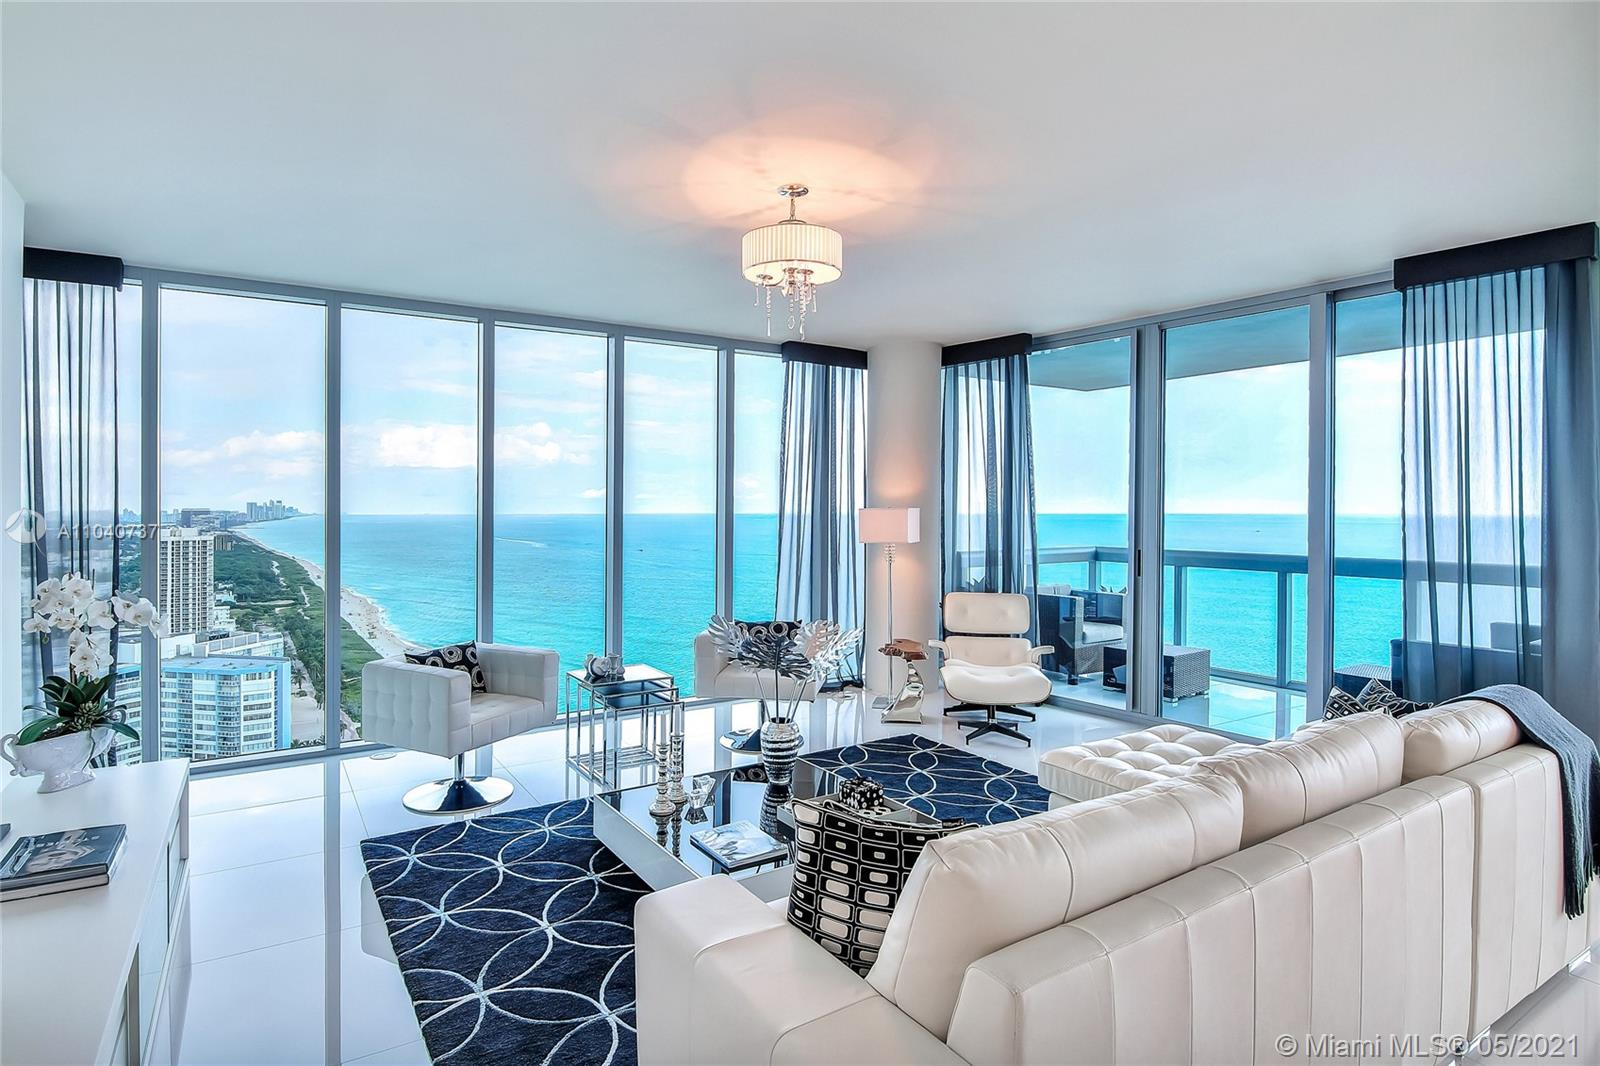 Best views in Miami Beach, see all the way to Ft Lauderdale! Spectacular unit designed by J Britto Designs. 3/3 + Den, floor to ceiling windows with direct ocean & bay/city Views! 2 large balconies, Large open floor plan, Sparkling kitchen with SubZero, Miele &Granite. Located in the Exclusive North Tower of Carillon. 5-Star Service, Valet & Concierge, 8 Memberships to Spa/Beach Club/over 50 Fitness Classes Daily. Organic Restaurants & 4 Pools and private beach attendants.